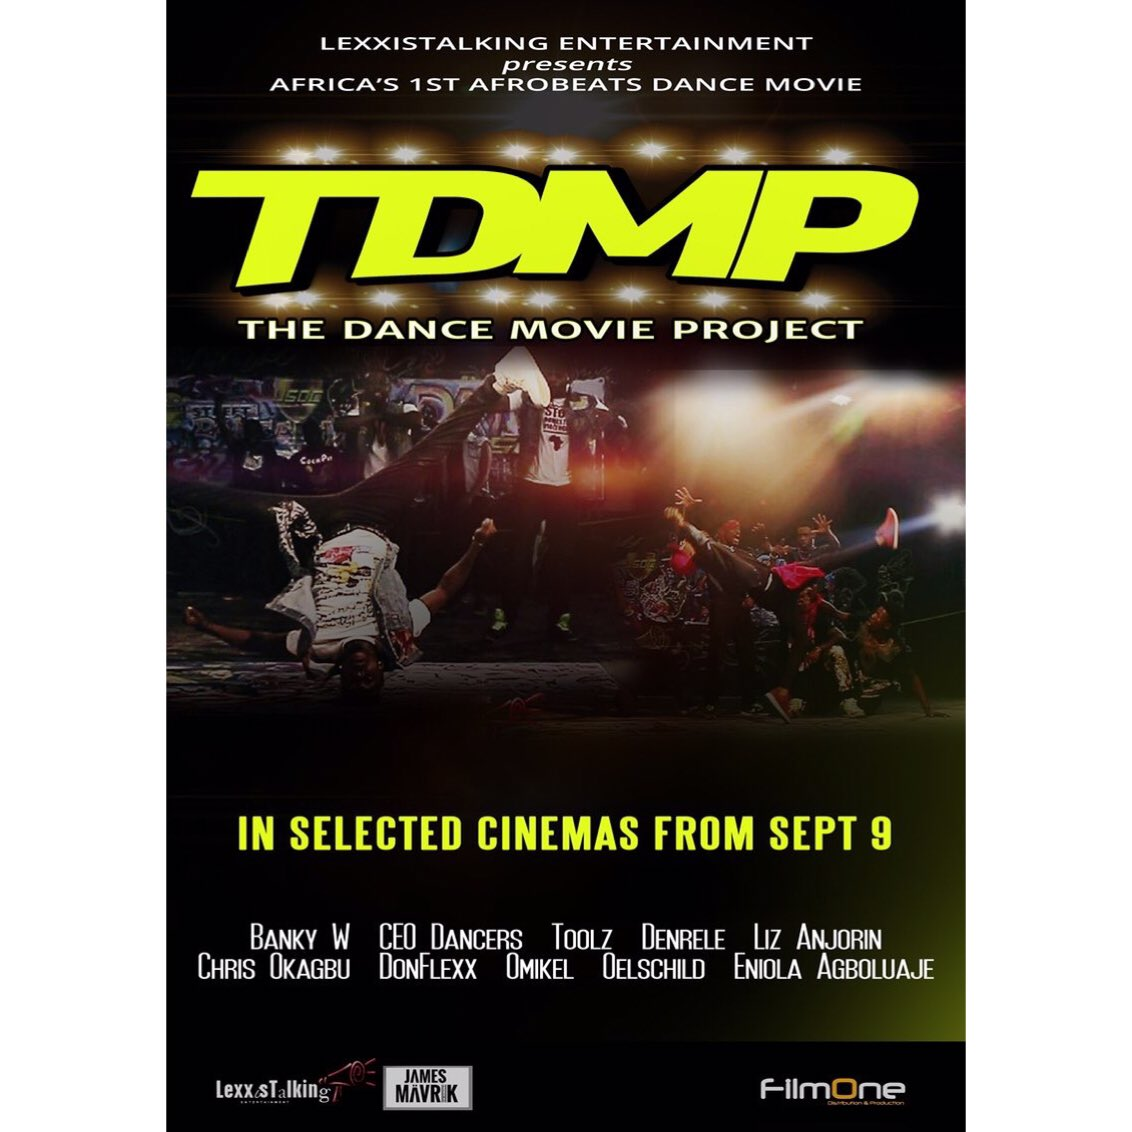 tdmpthemovie hashtag on Twitter